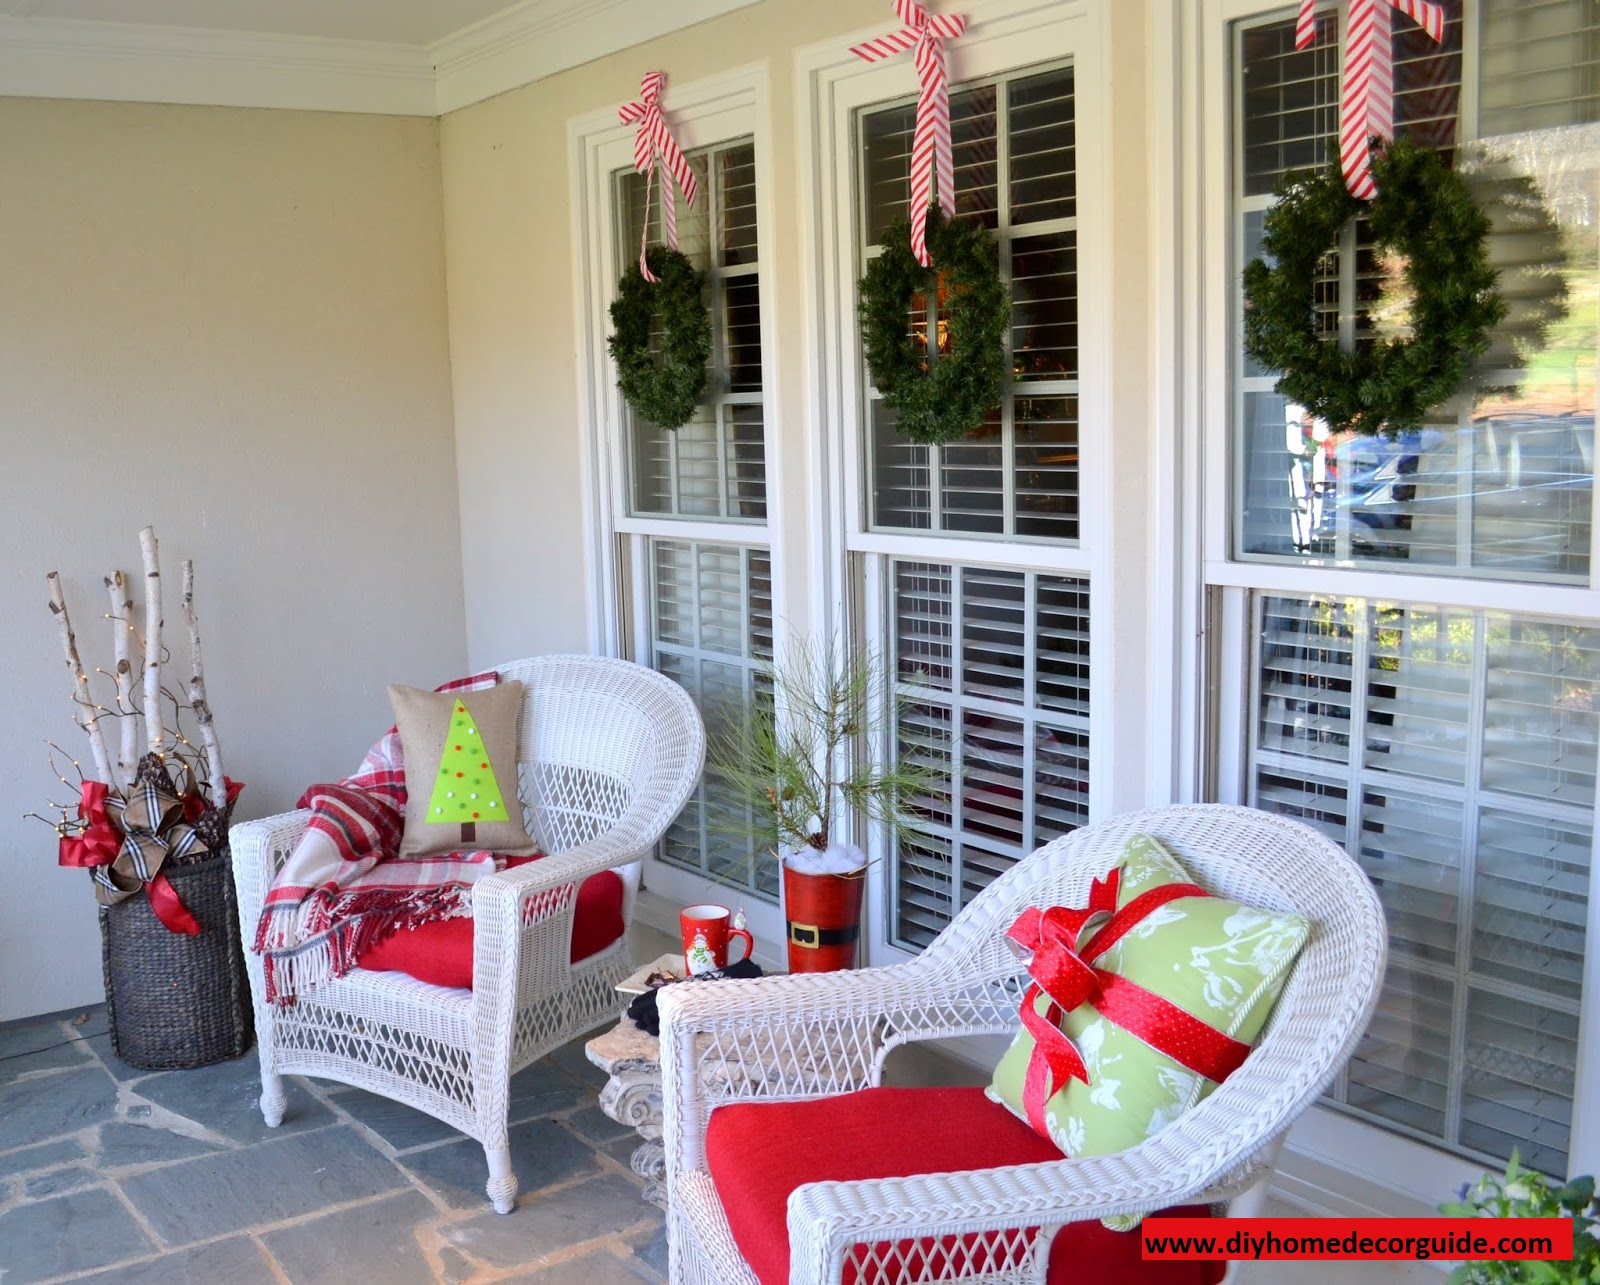 20 diy outdoor christmas decorations ideas 2014 for Decorations for a home